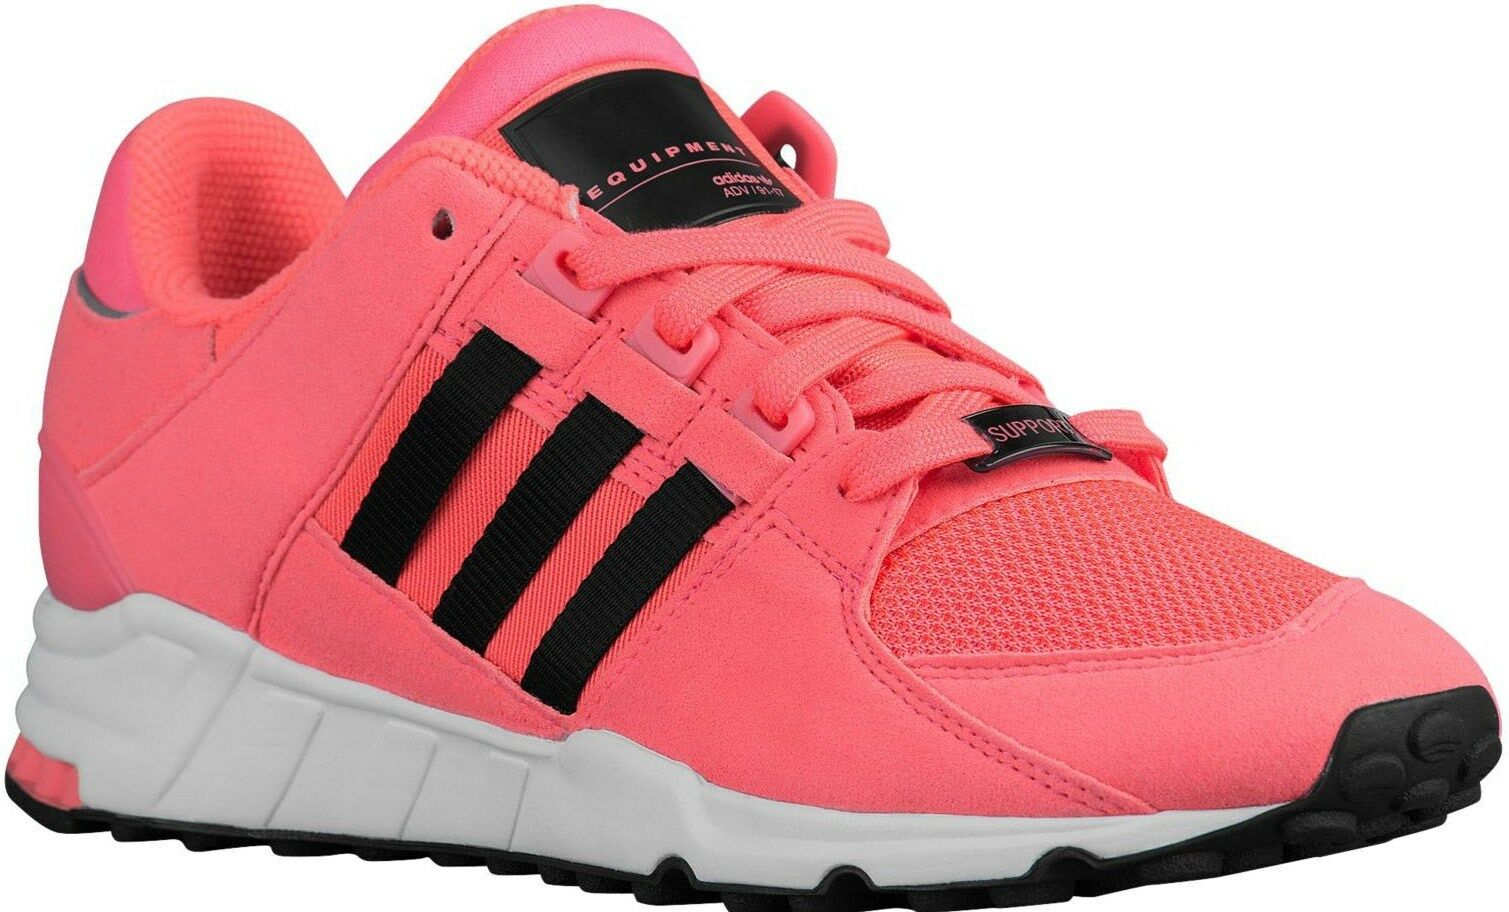 Zapatos promocionales para hombres y mujeres Adidas Equipment Running Support RF Sneaker Gr. 43 1/3 Sport Laufschuhe NEU